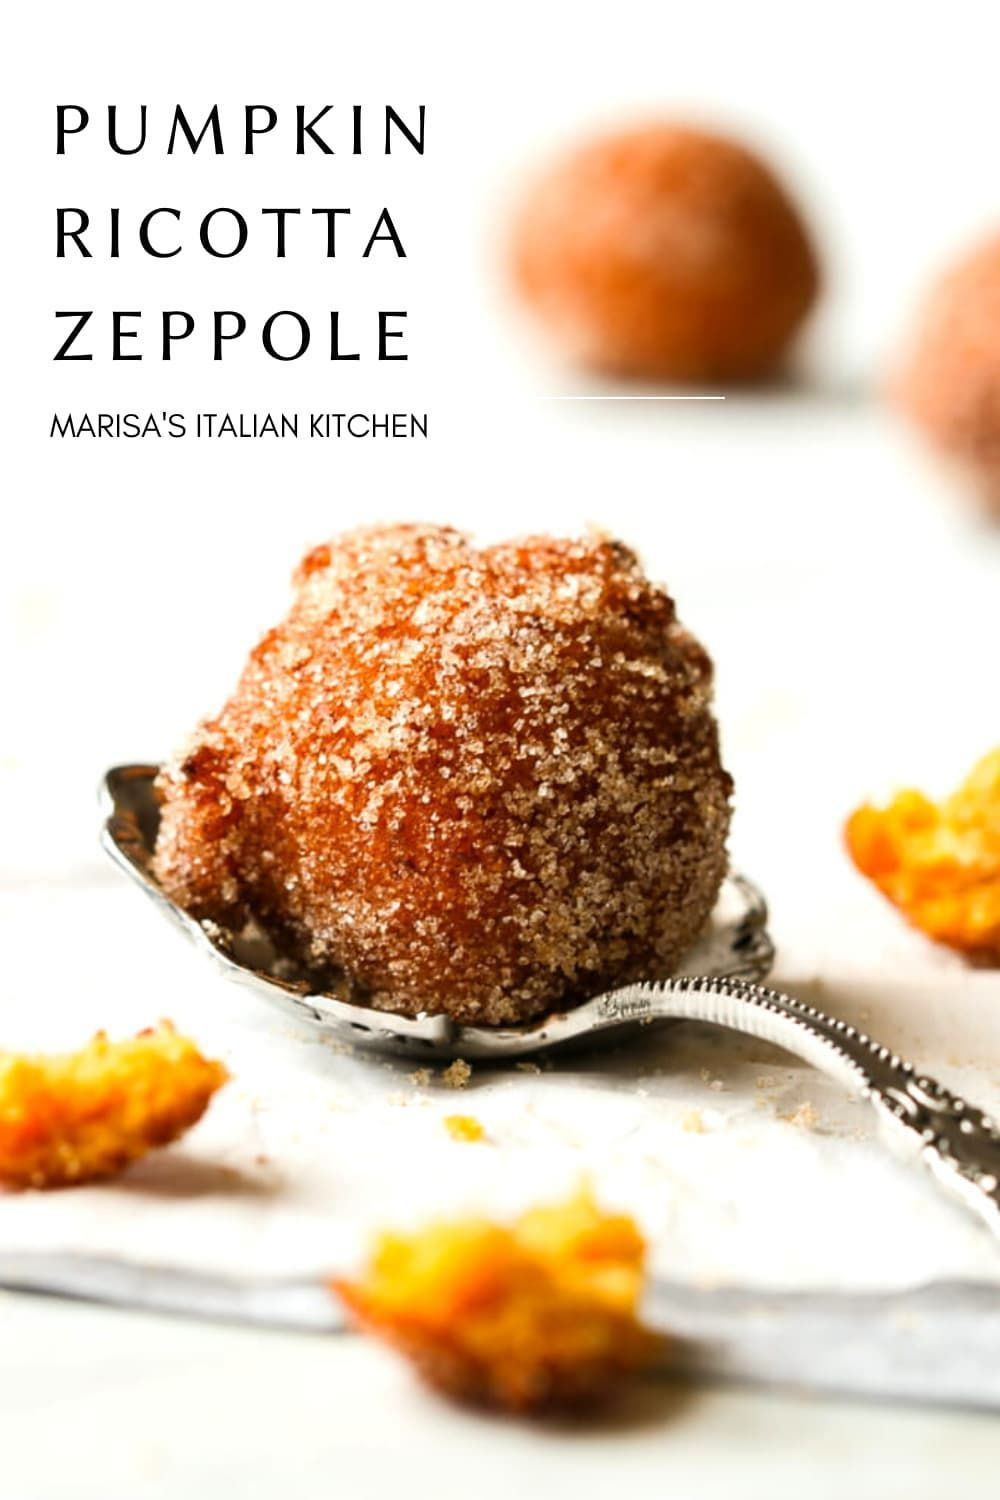 Photo of Pumpkin Ricotta Zeppole